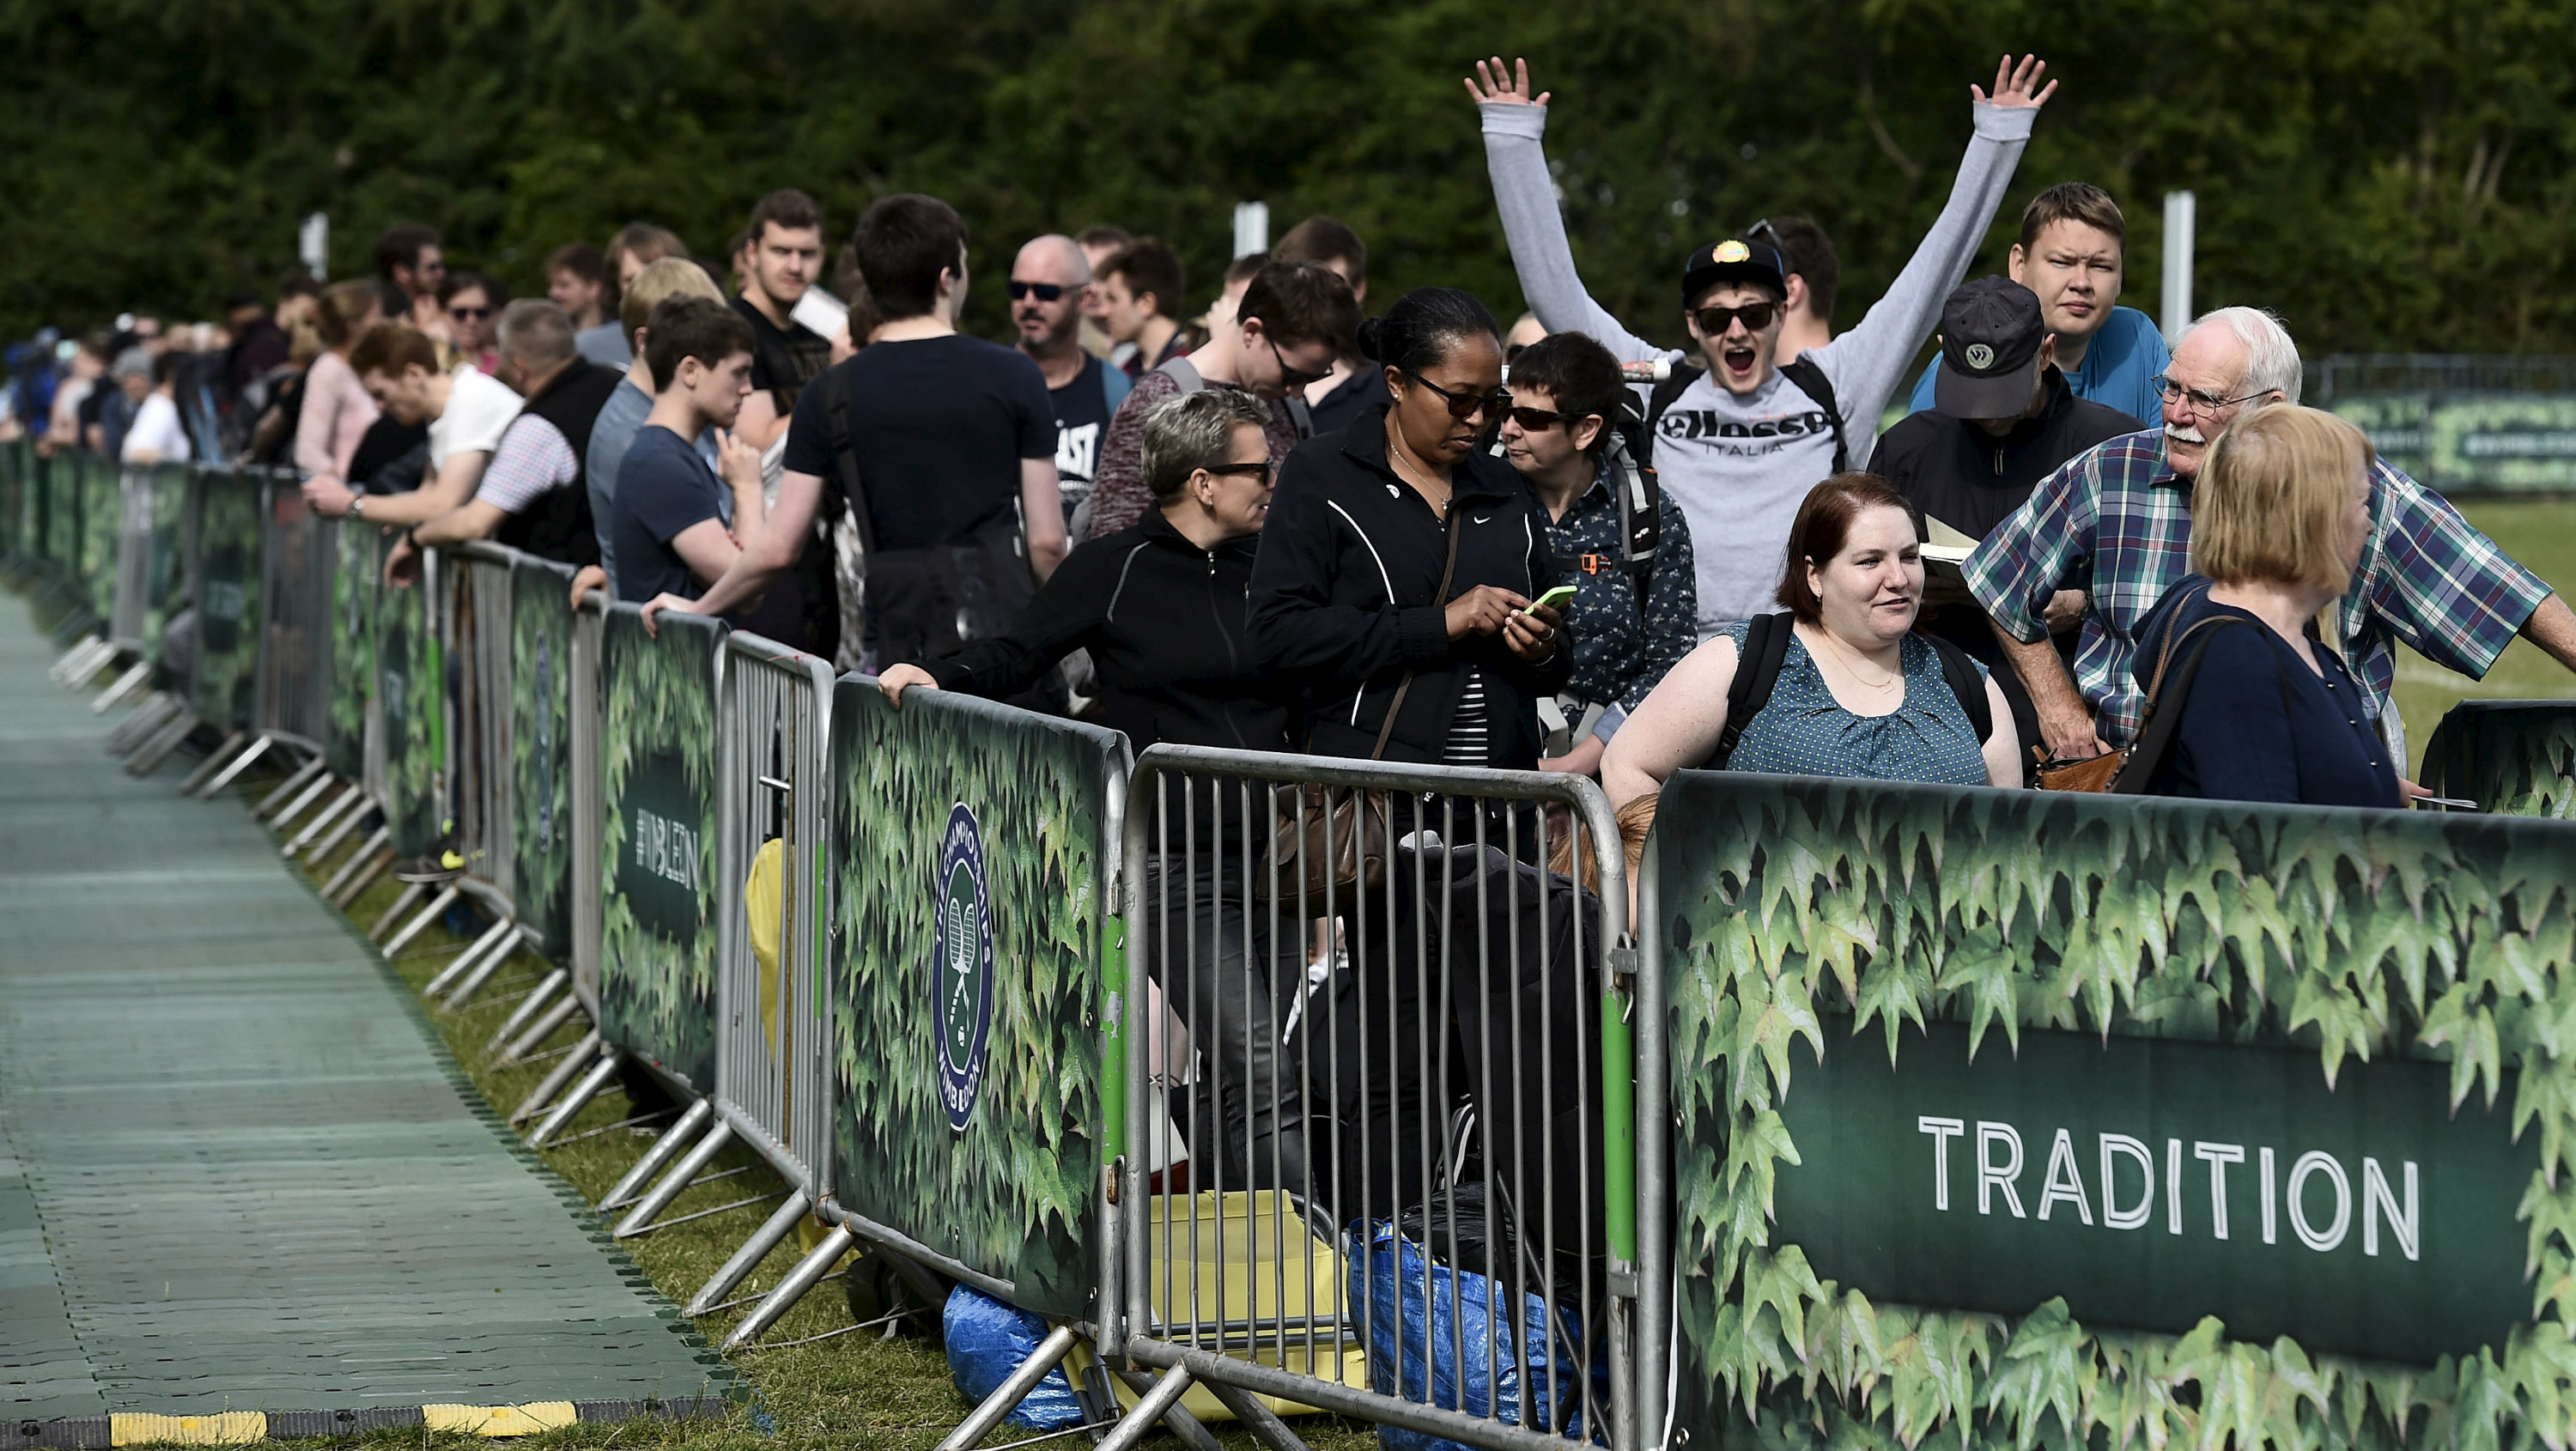 Tennis fans wait in the ticket queue at Wimbledon in London June 28, 2015.